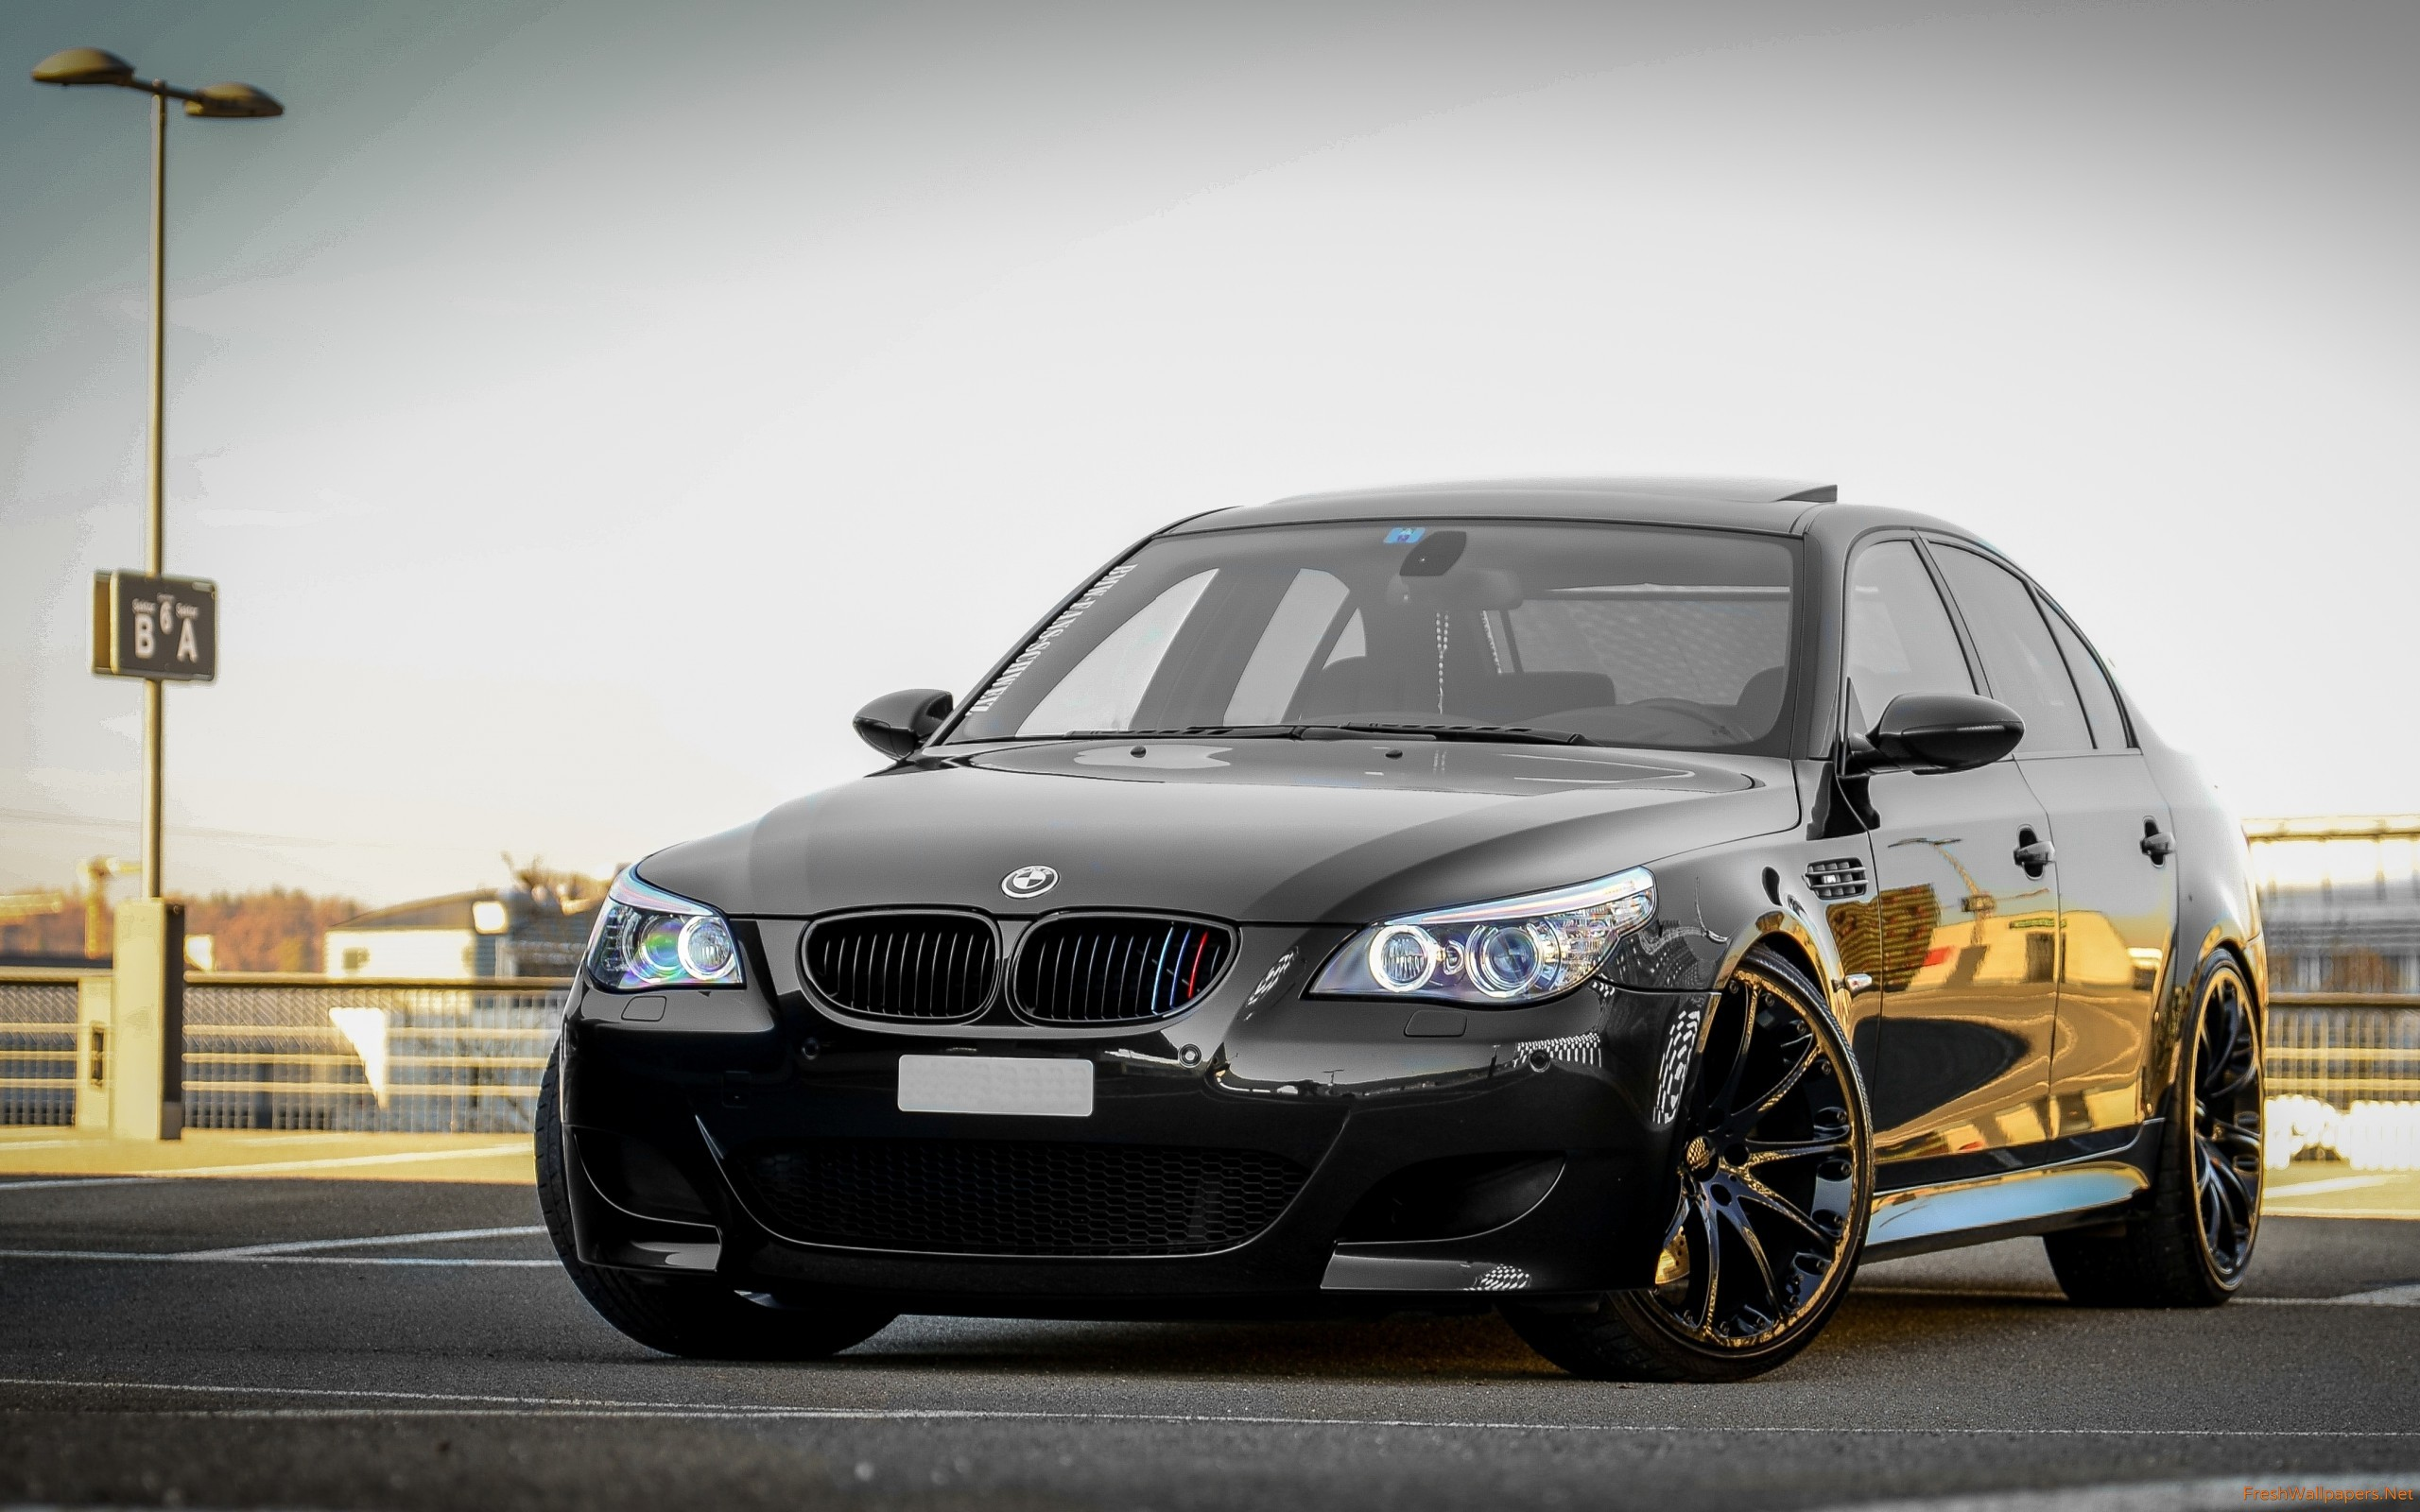 2560x1600 - BMW M5 Wallpapers 29